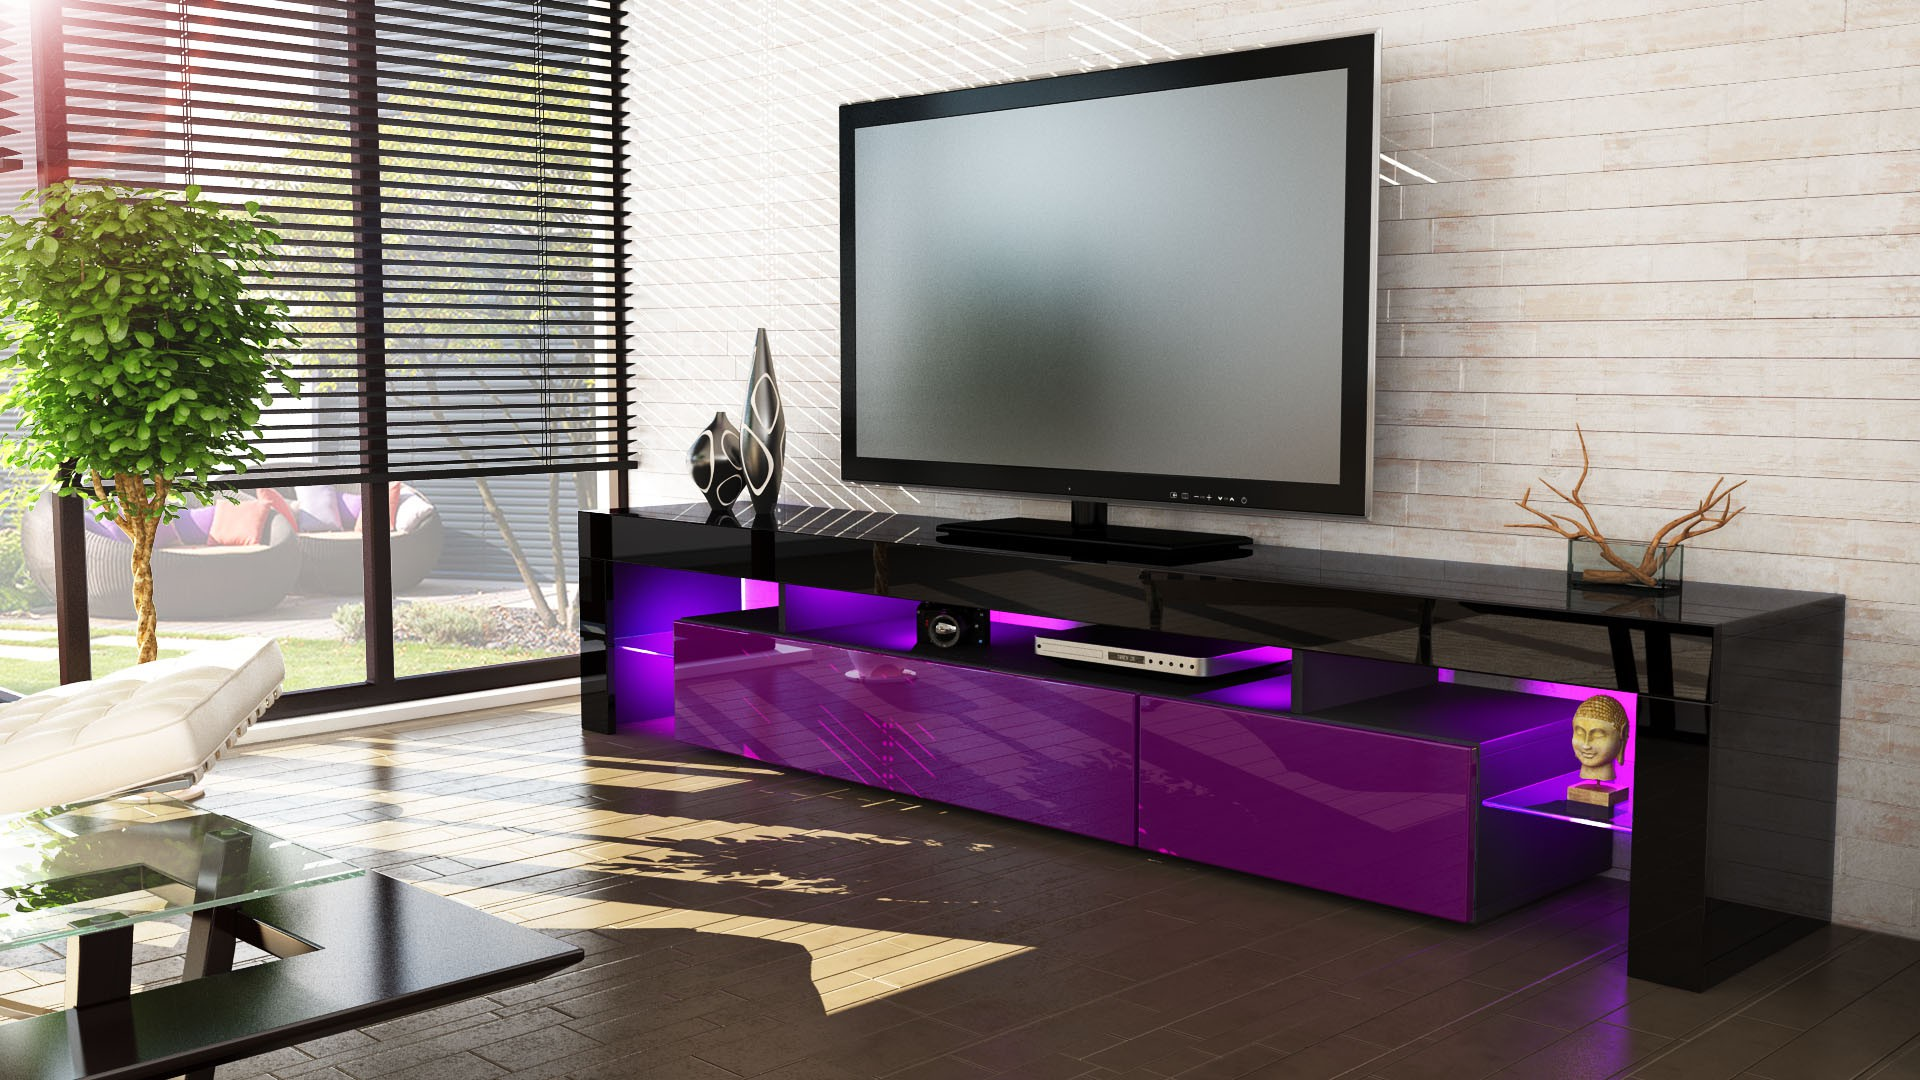 meuble tv noir et violet 189 cm avec led pour meubles tv design a 4. Black Bedroom Furniture Sets. Home Design Ideas